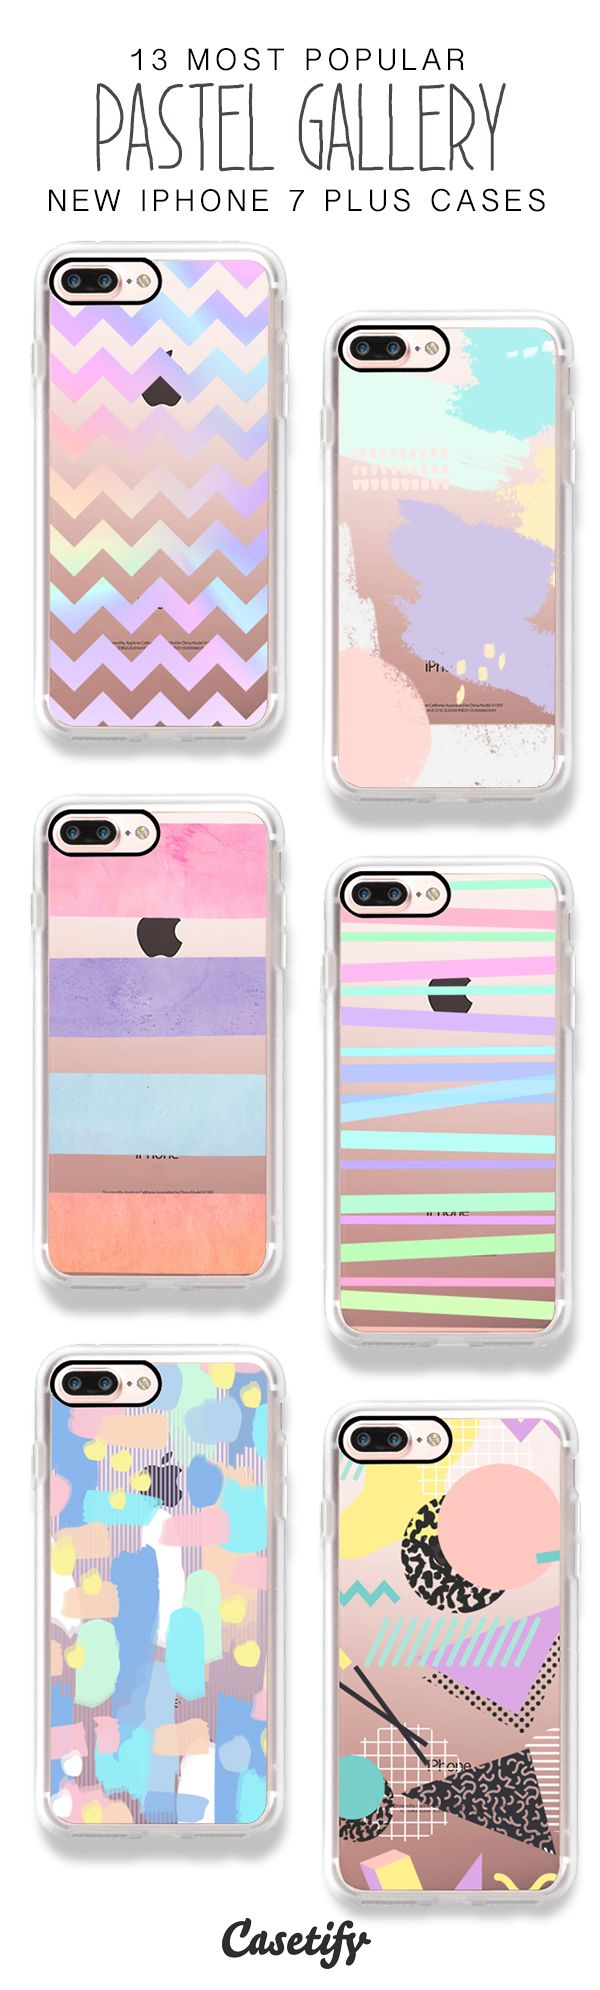 Getting Lost in the Pastel Gallery! 13 Most Popular iPhone 7 / iPhone 7 Plus Phone Cases here > https://www.casetify.com/artworks/nwJZxEA8HP